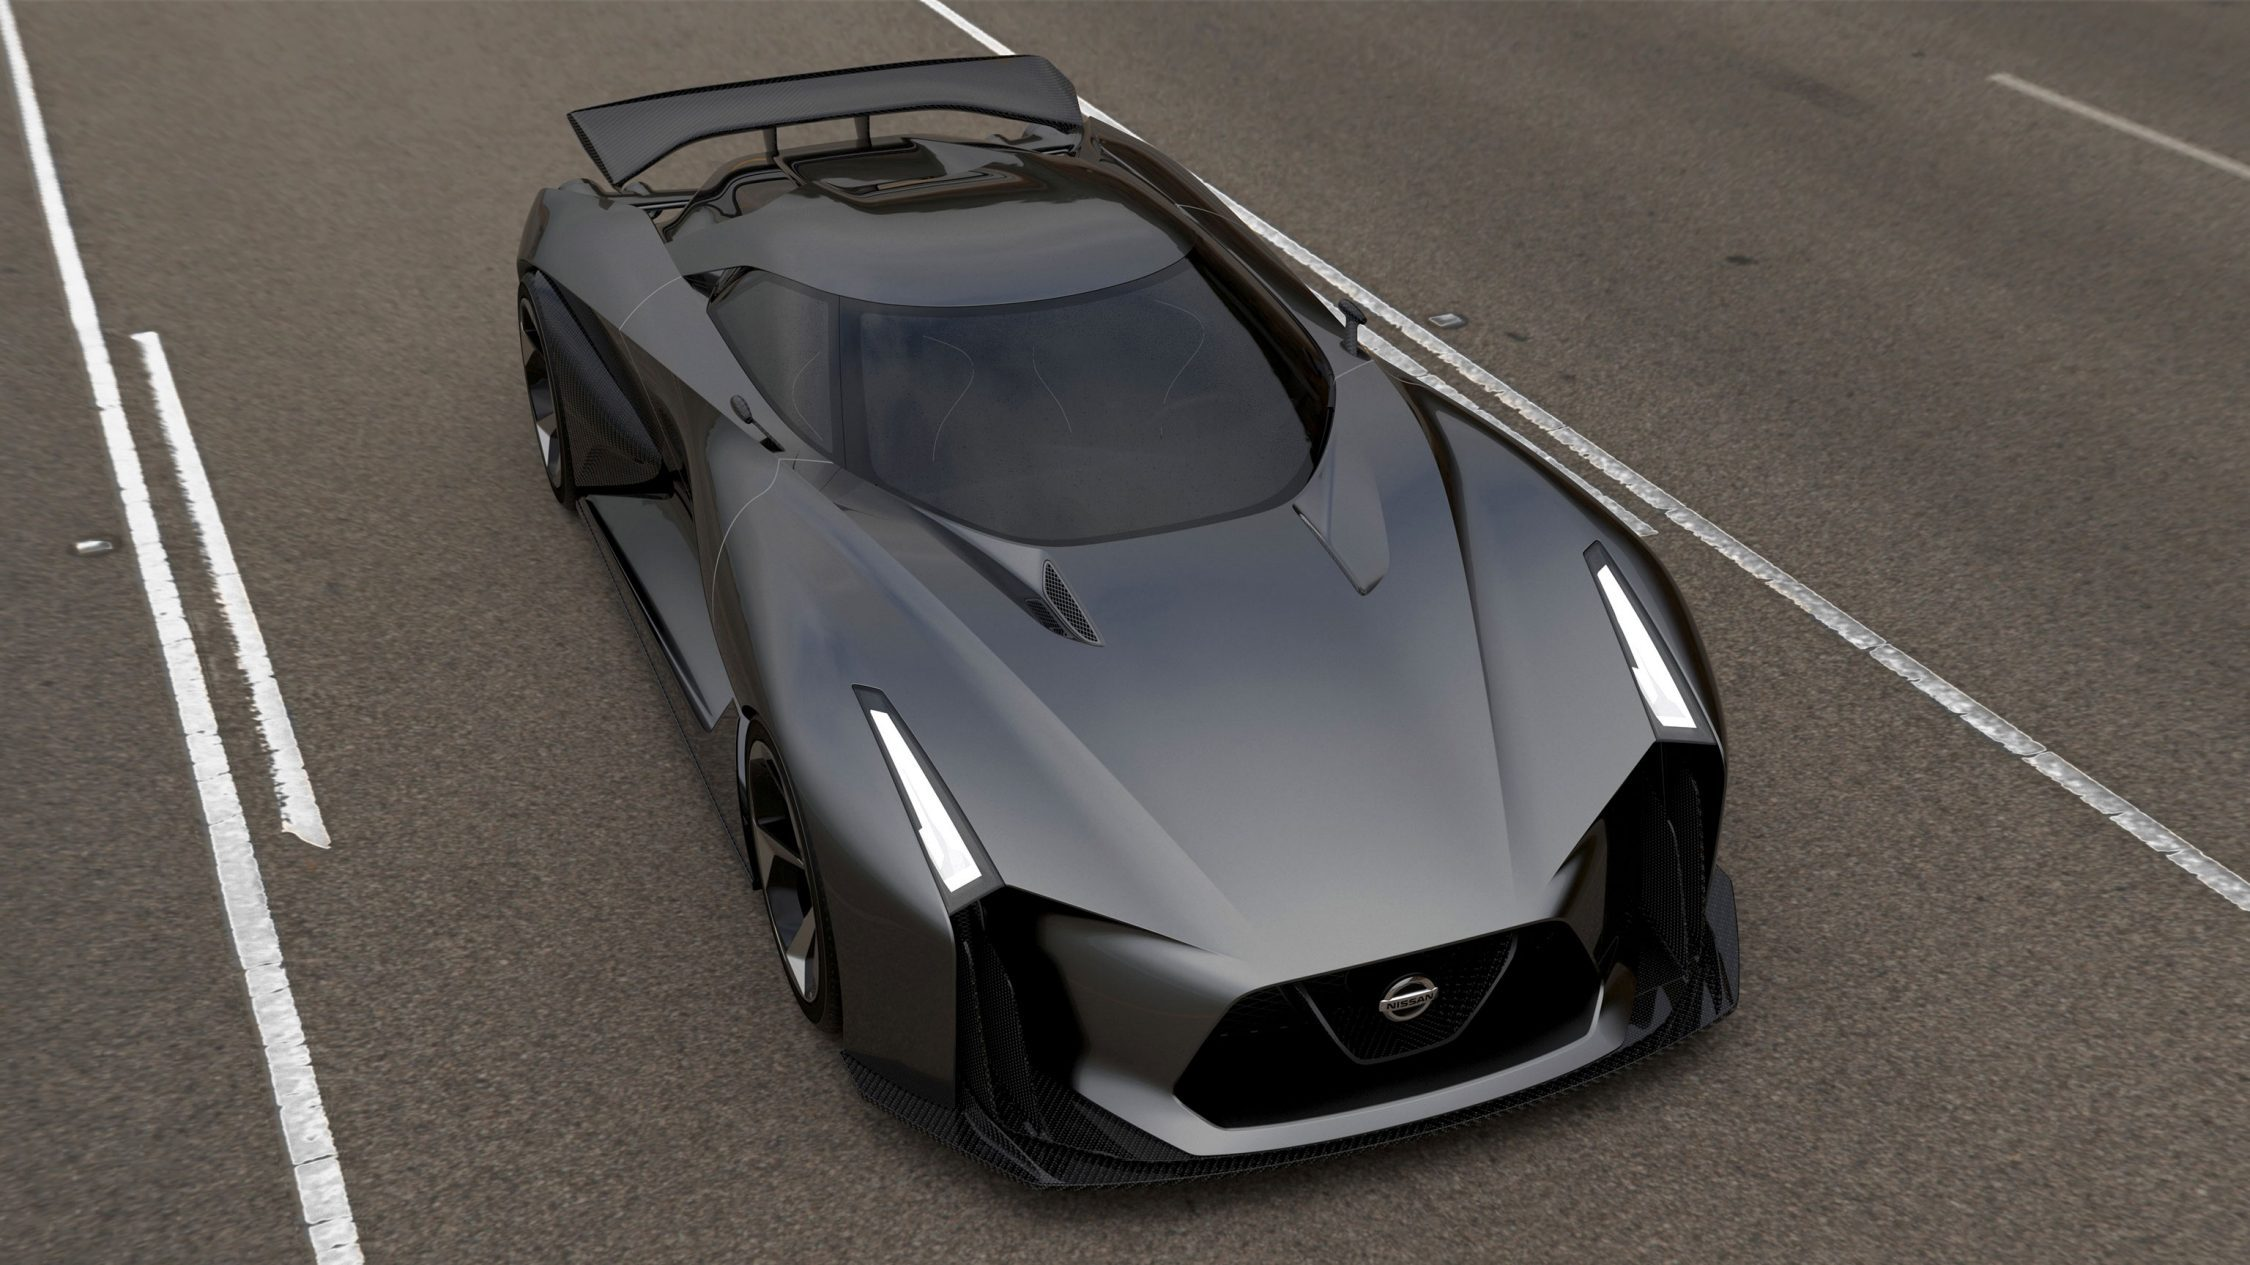 Experience Nissan - Concept car - 2020 Vision Gran Turismo - top front view